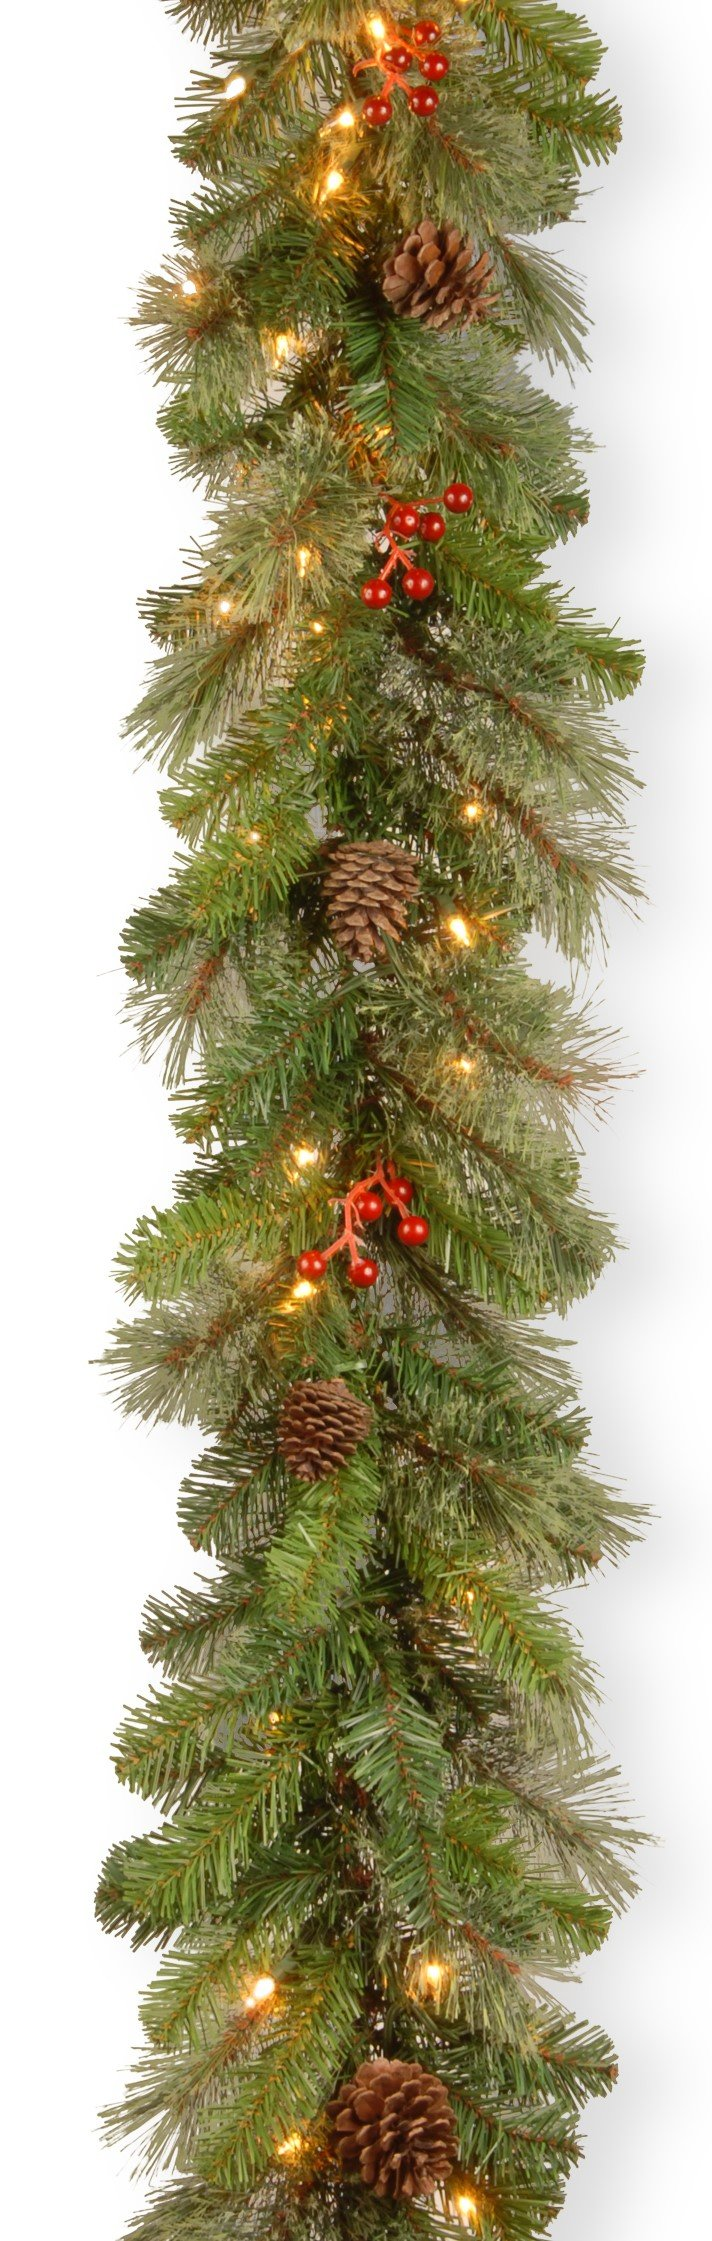 National Tree 9 Foot by 12 Inch Cashmere Berry Collection Garland with 11 Cones, 11 Red Berries and 70 Clear Lights (CB4-300-9B-1)